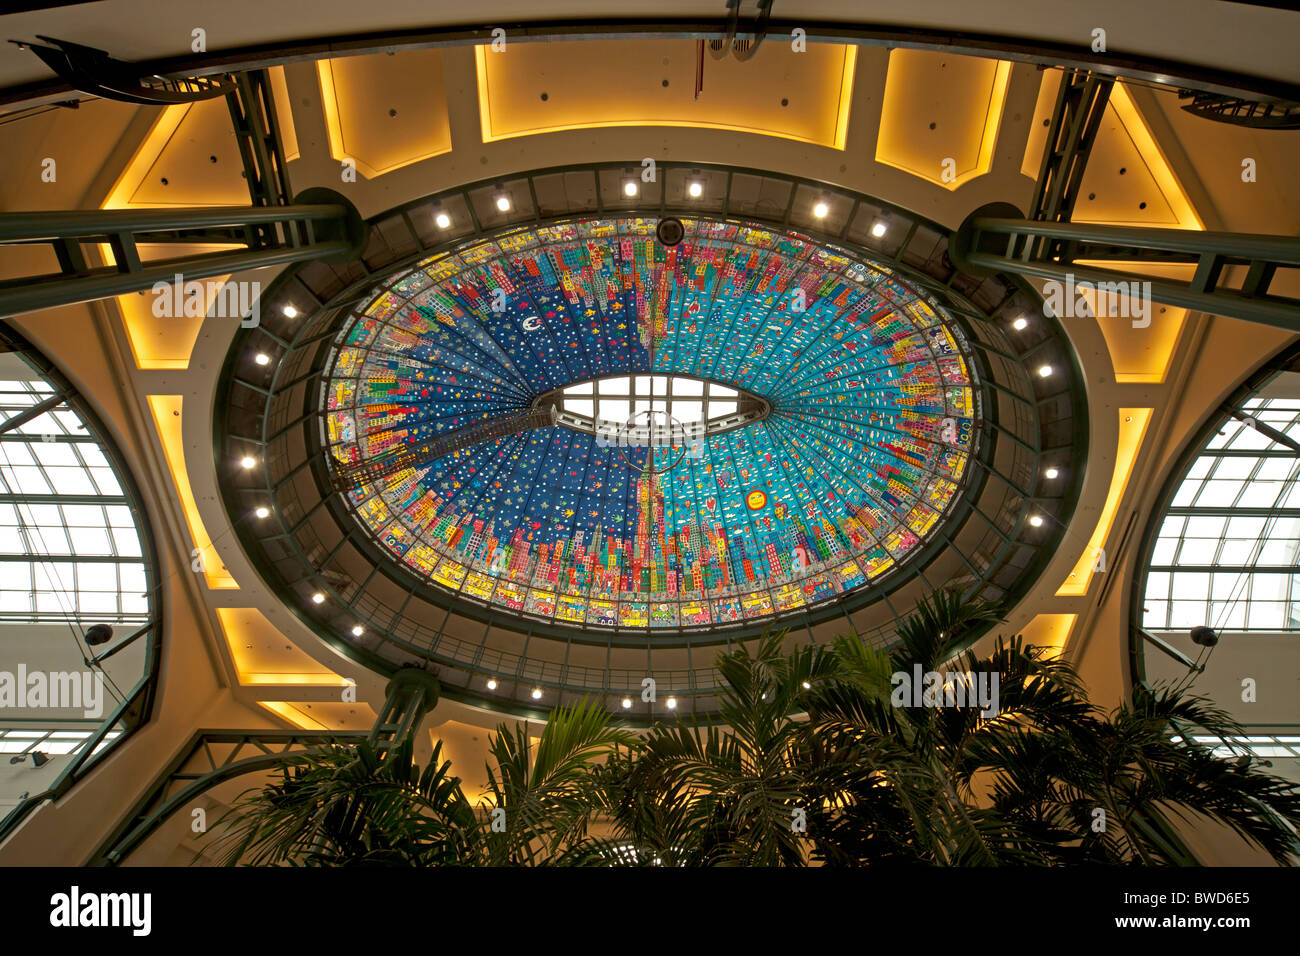 shopping complex centro in oberhausen germany - Stock Image